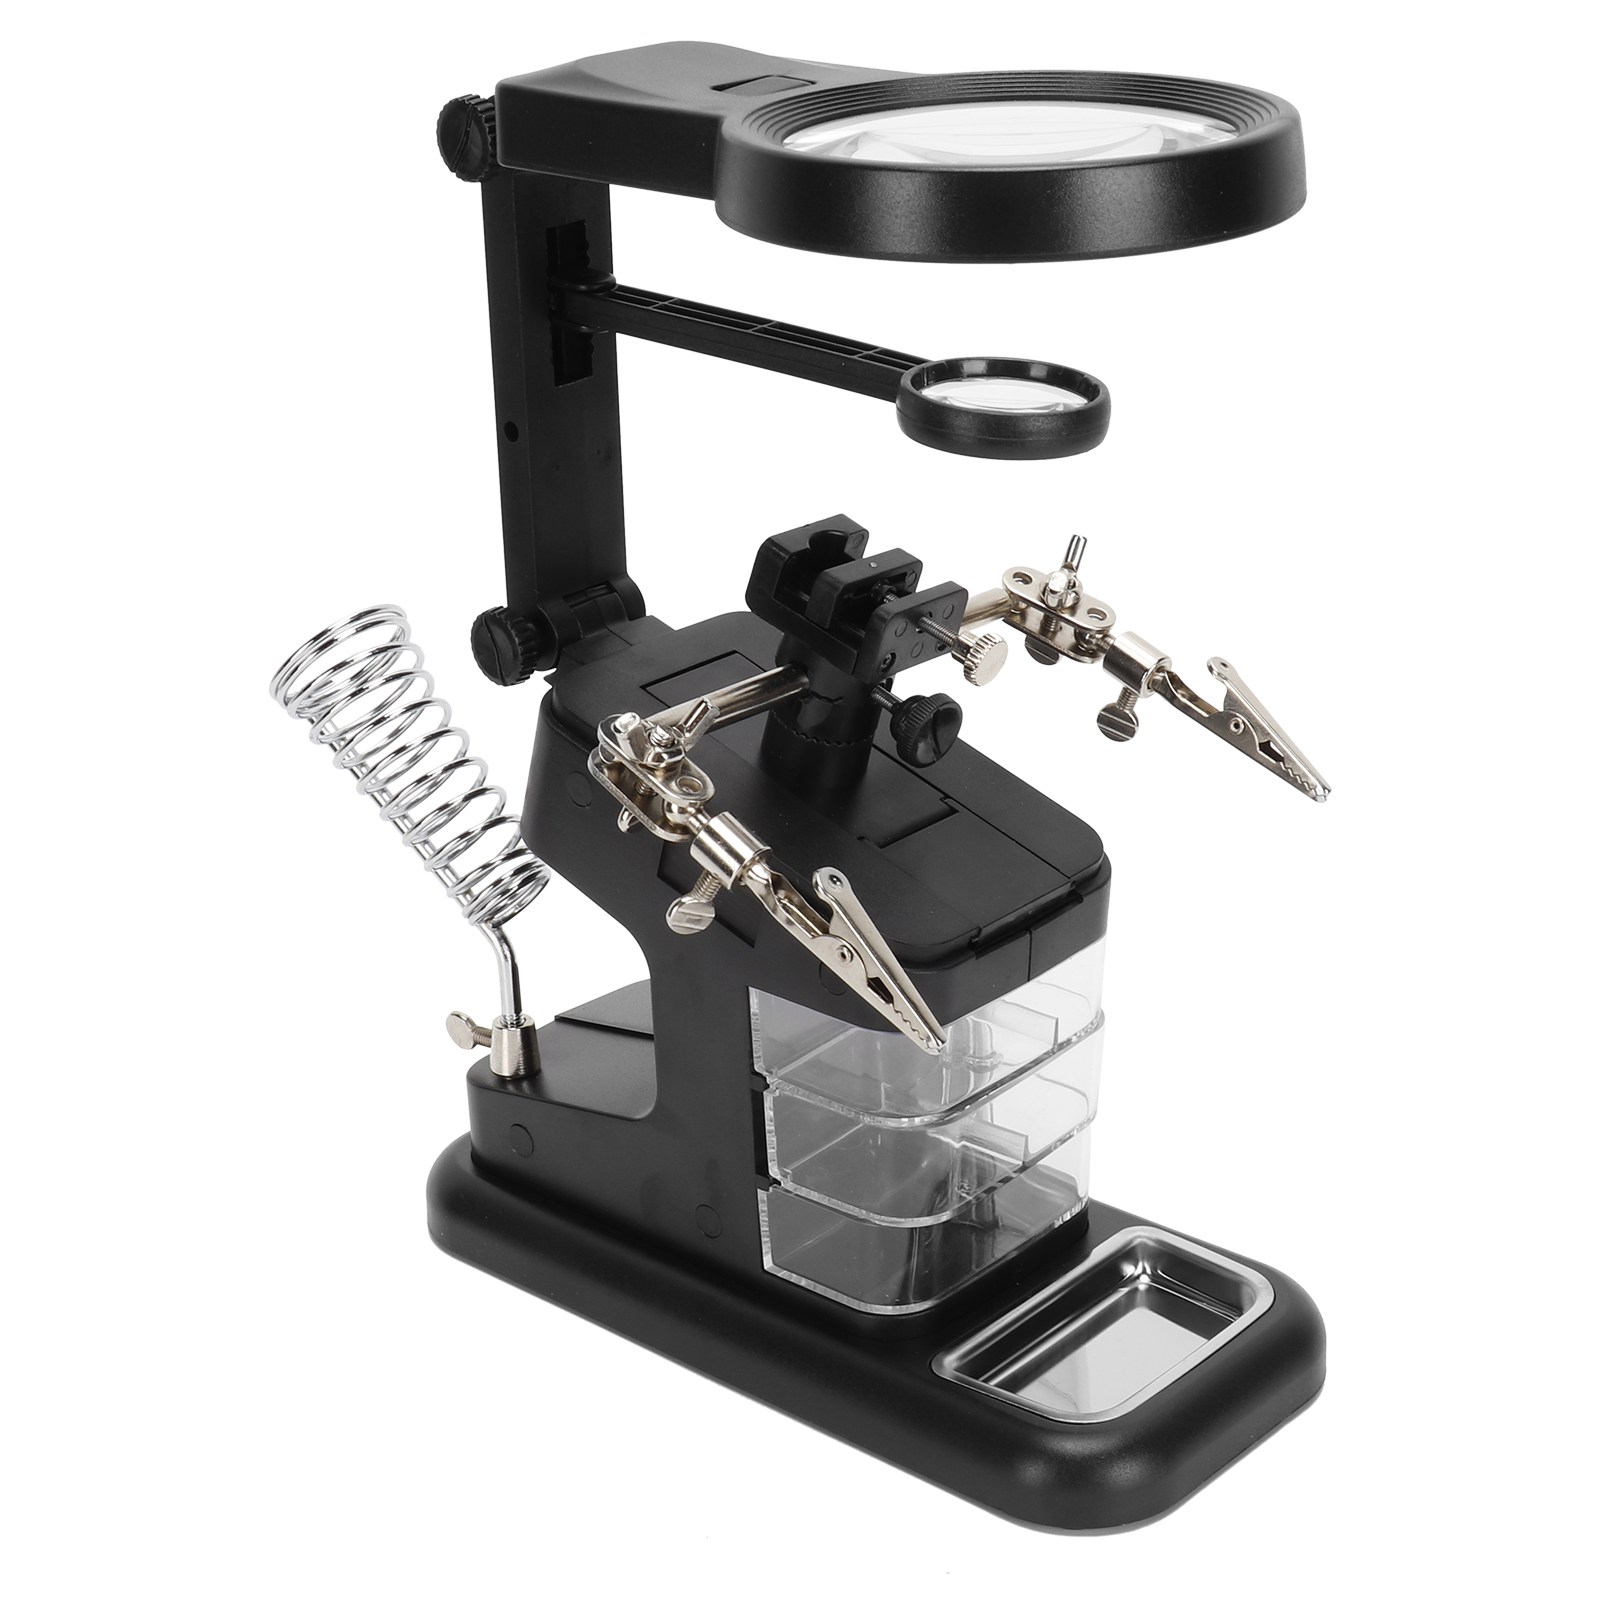 Details about  /Tabletop LED Hand Free Magnifying Glass Magnifier For Soldering Jewelry Tool